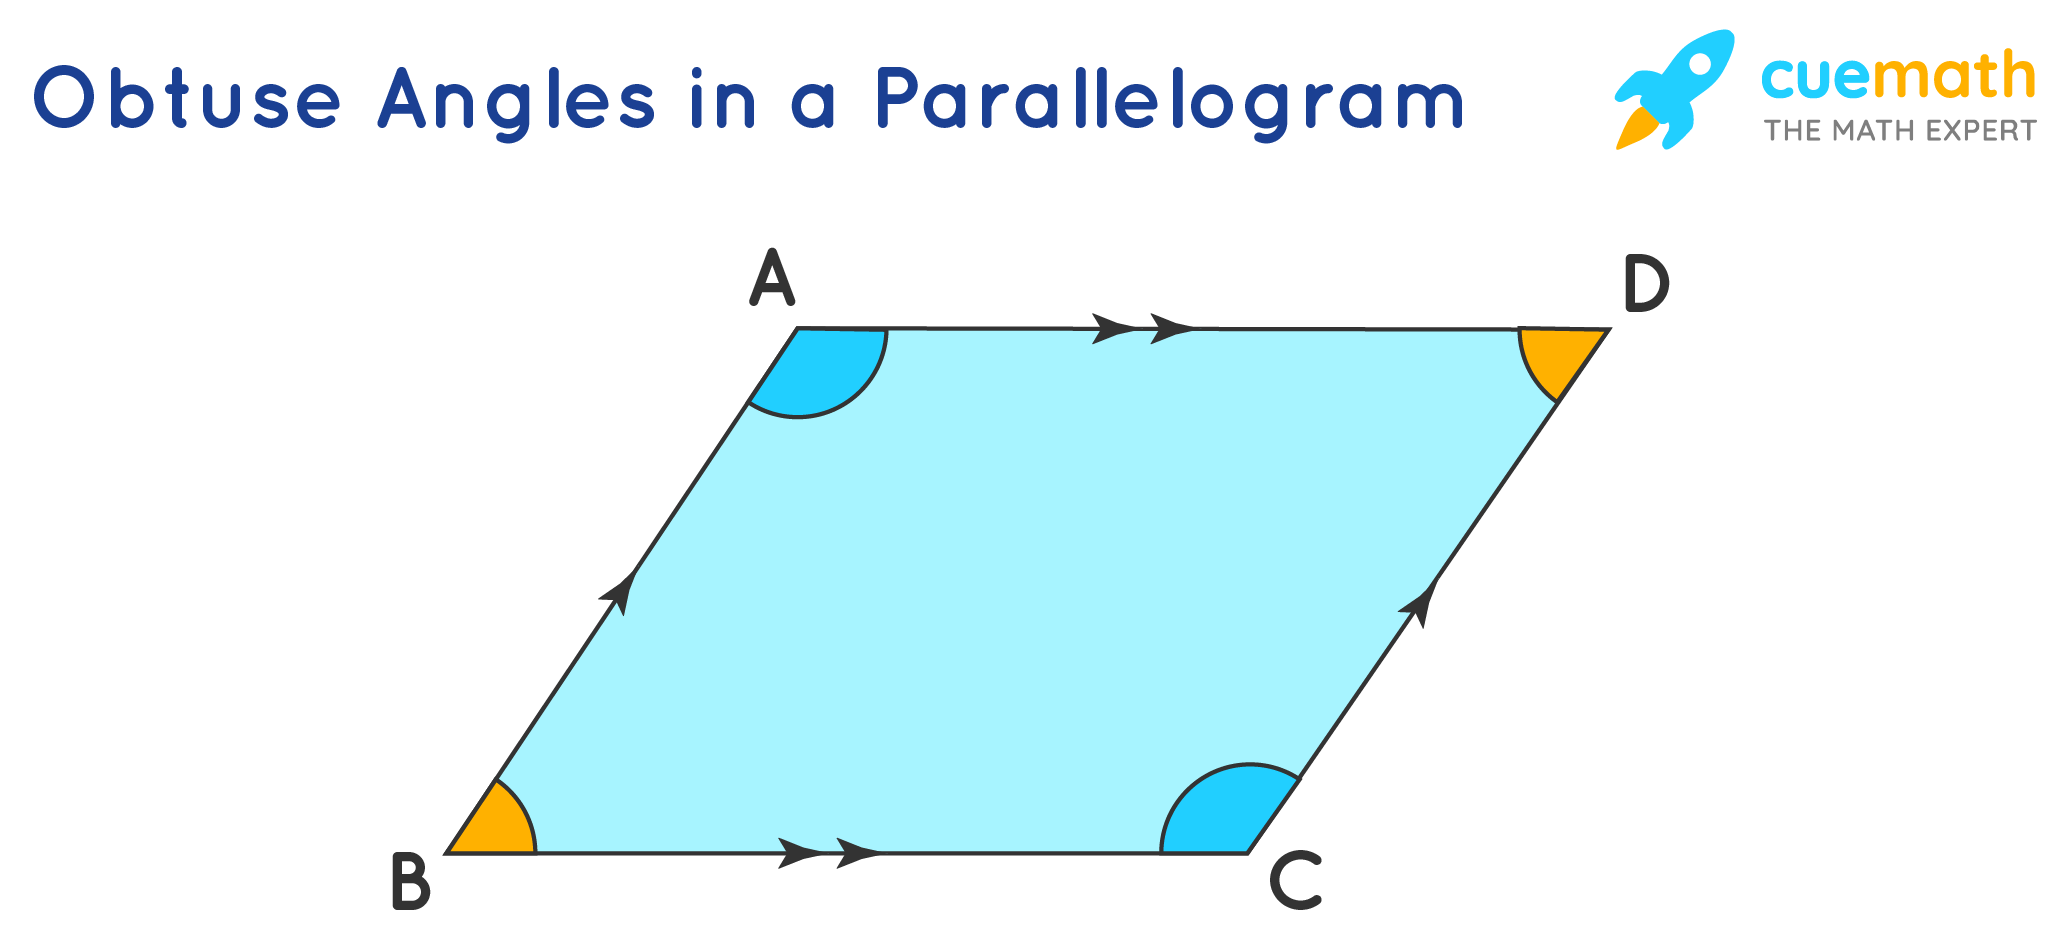 Obtuse Angles in a Parallelogram